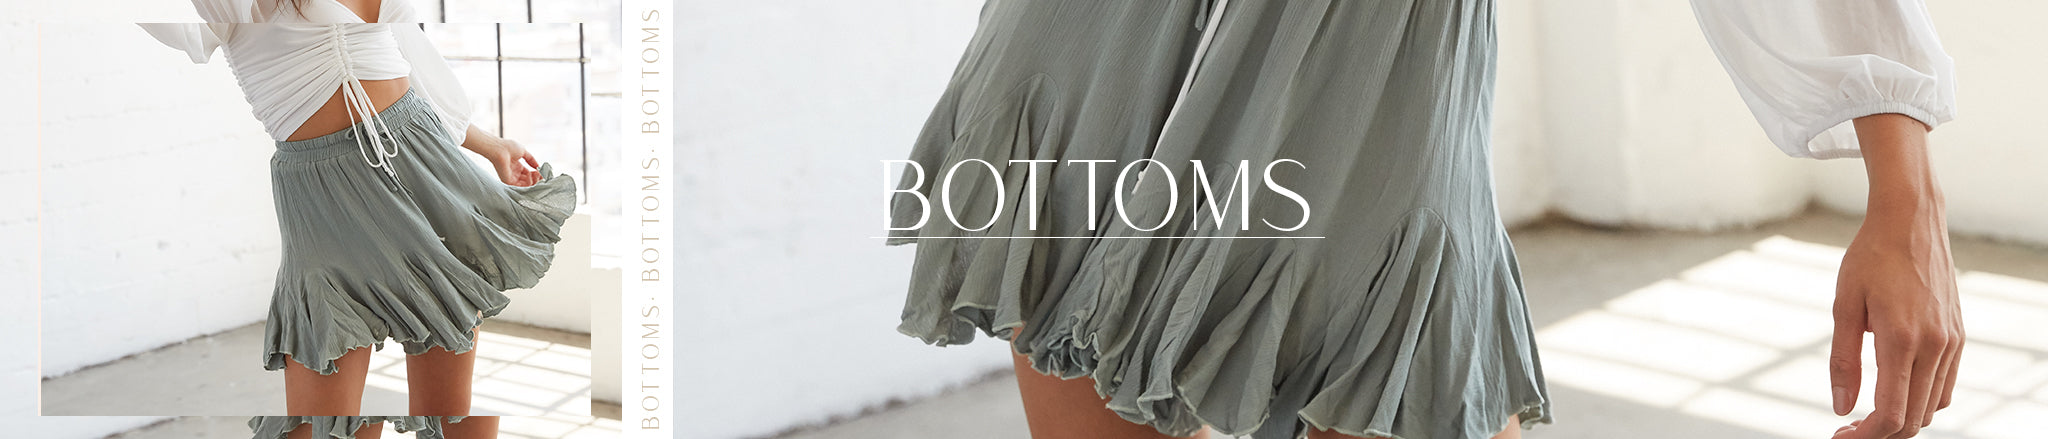 Bottoms featuring flowy high waisted ruffle shorts in sage green.